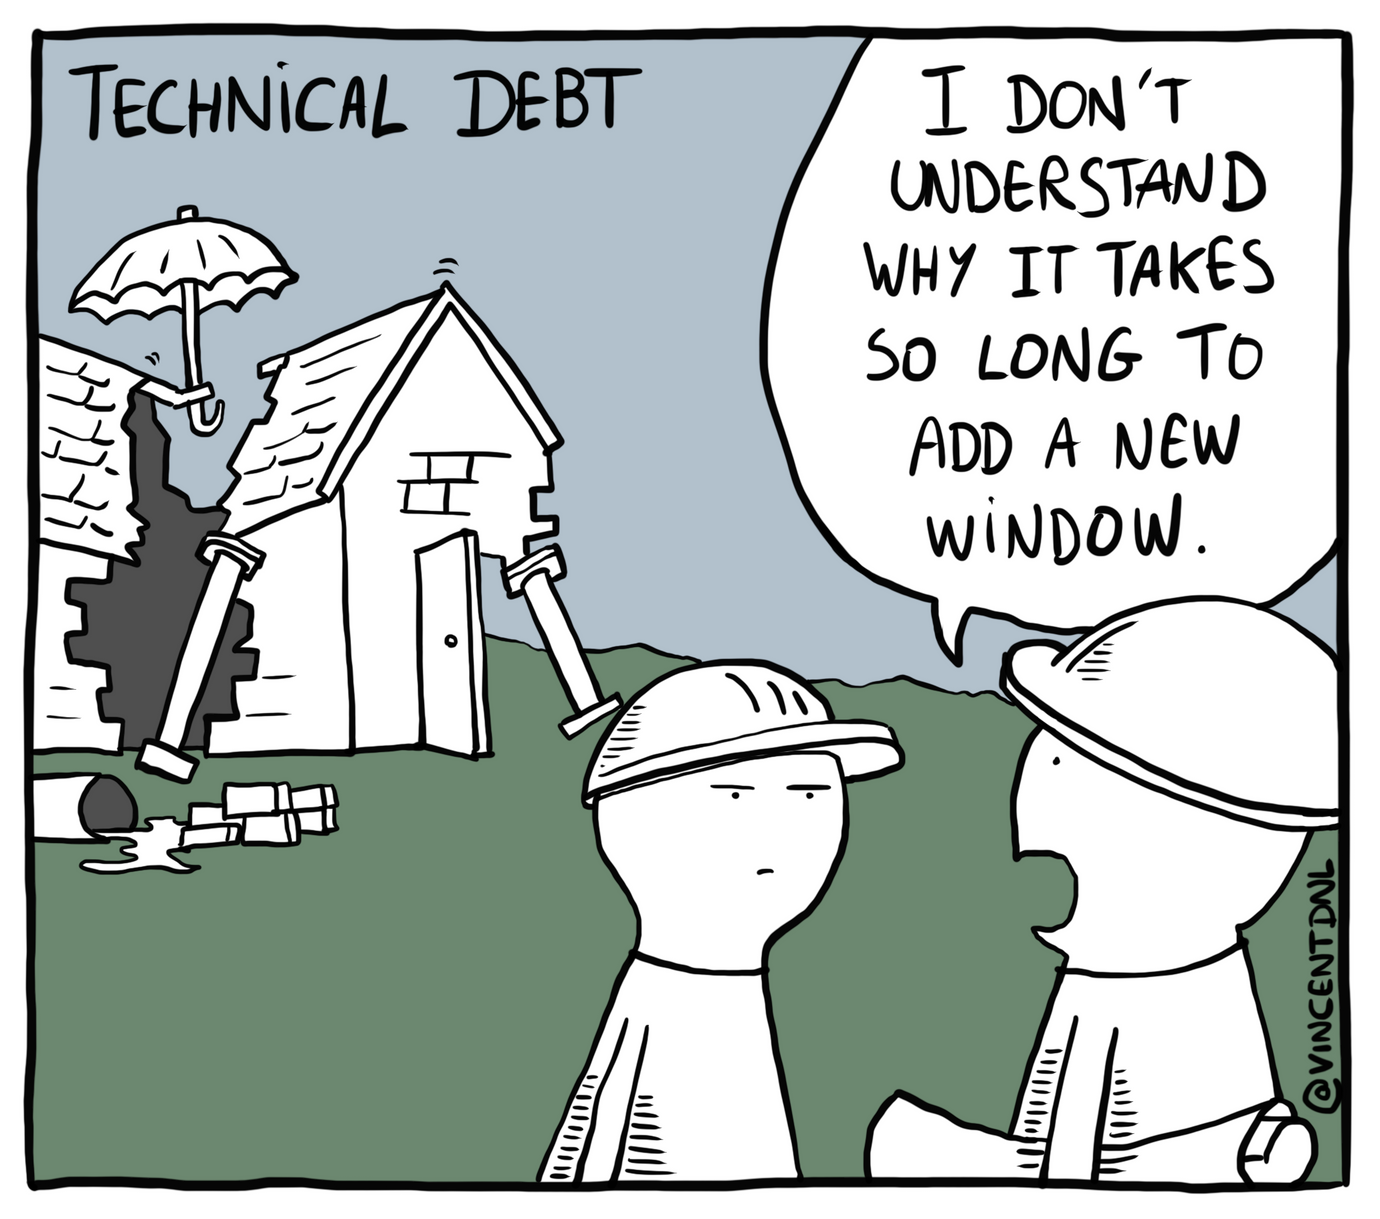 drawing - text: Technical Debt - I don't understand why it takes so long to add a new window.